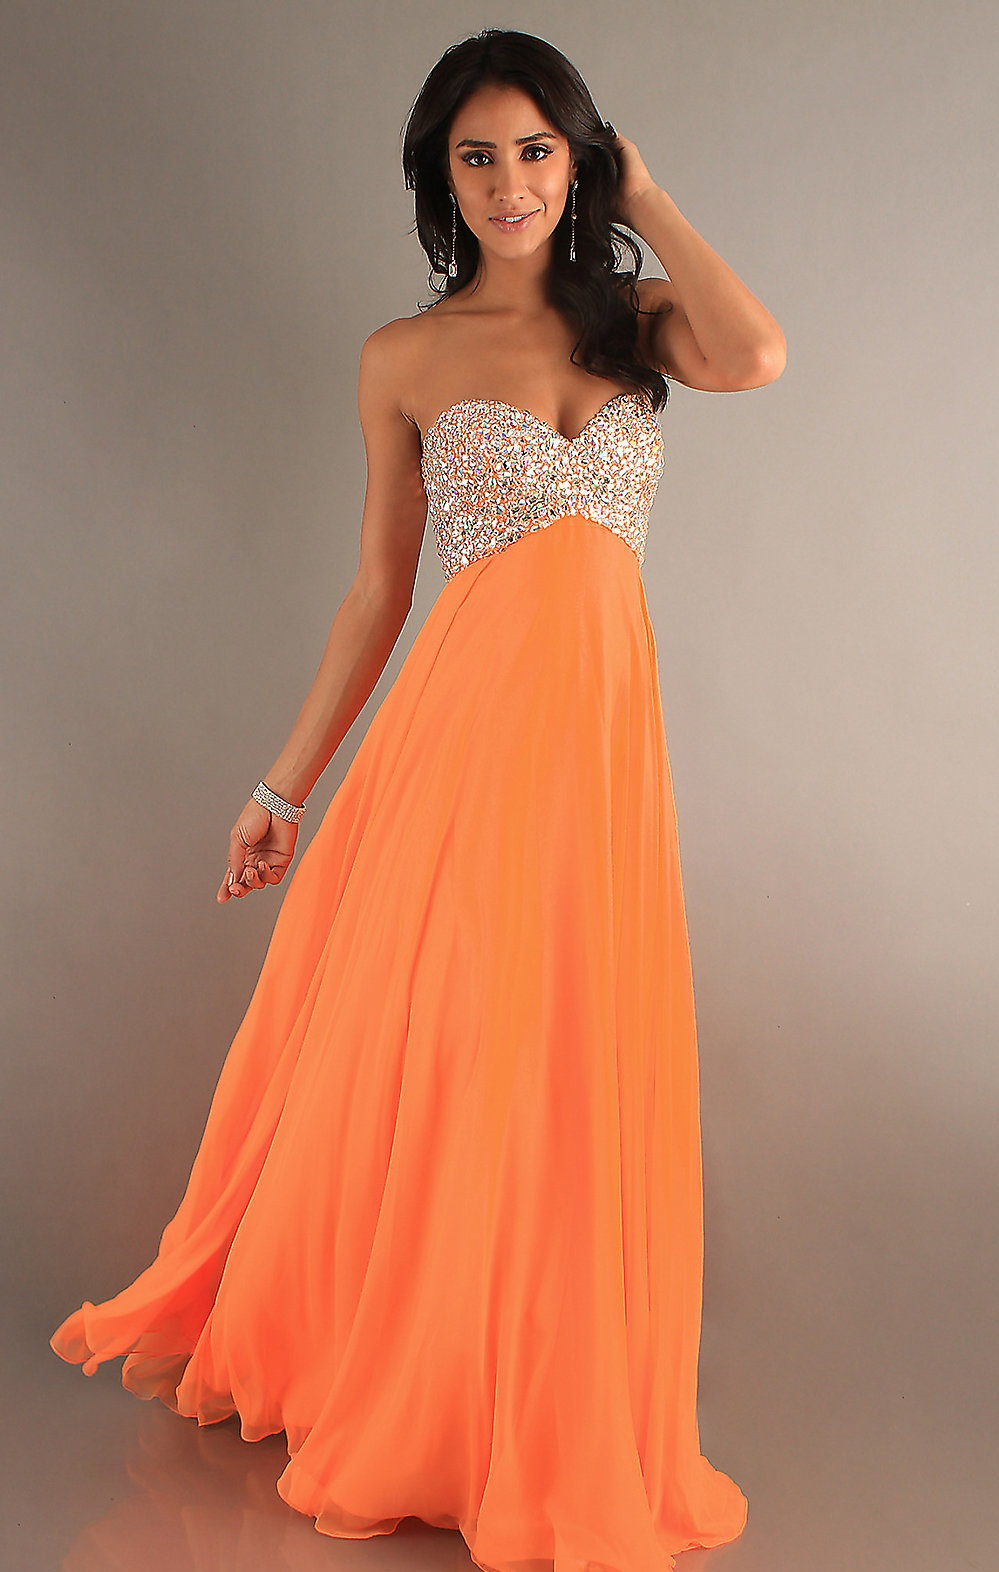 CHIN LENGTH HAIRSTYLES 2012: ORANGE PROM DRESSES CAN GIVE